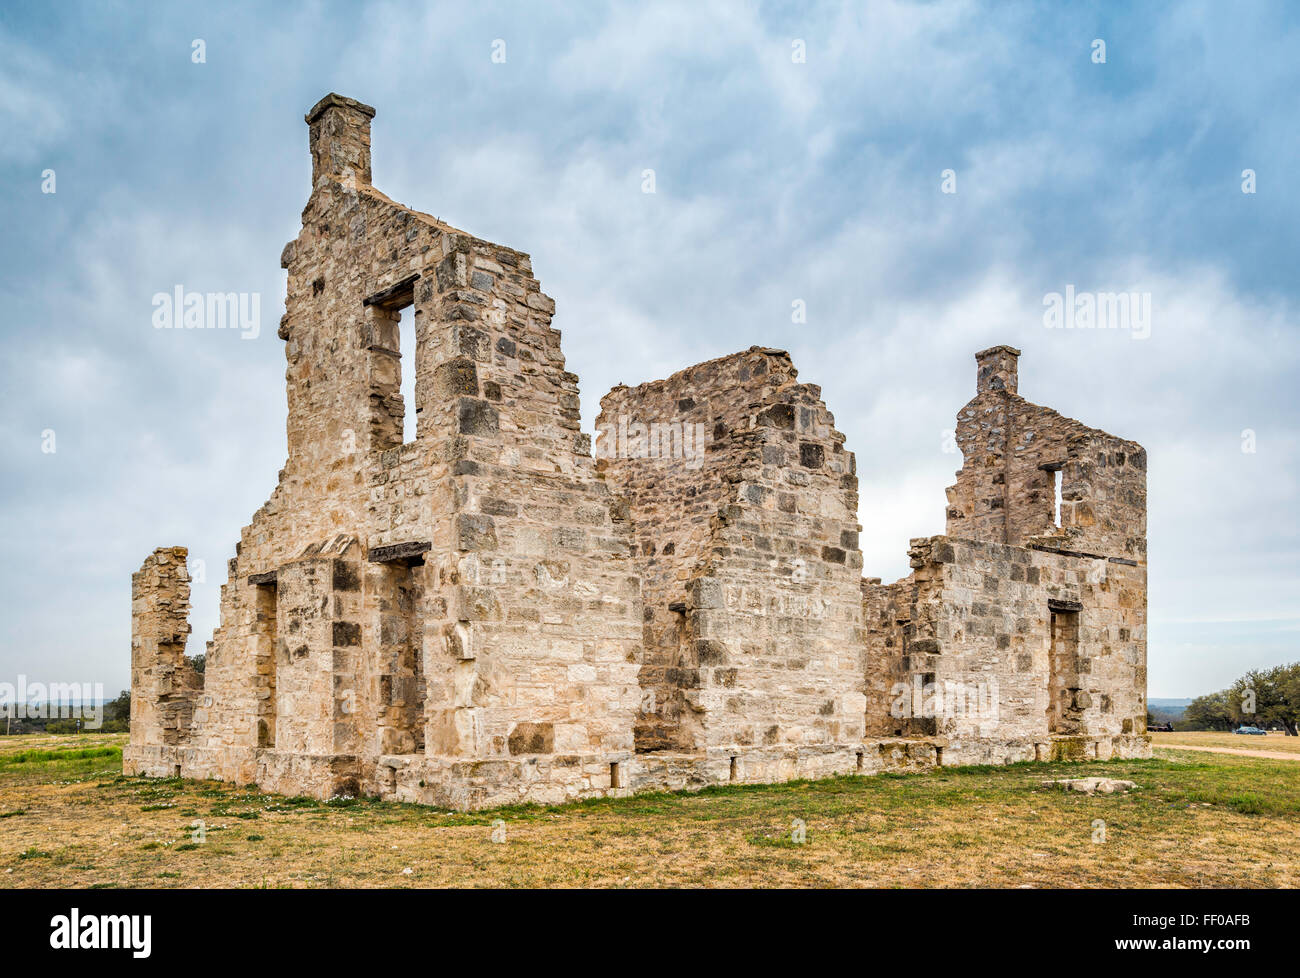 Commanding Officer's Quarters, ruined building at Fort McKavett State Historic Site in Fort McKavett, Texas, - Stock Image